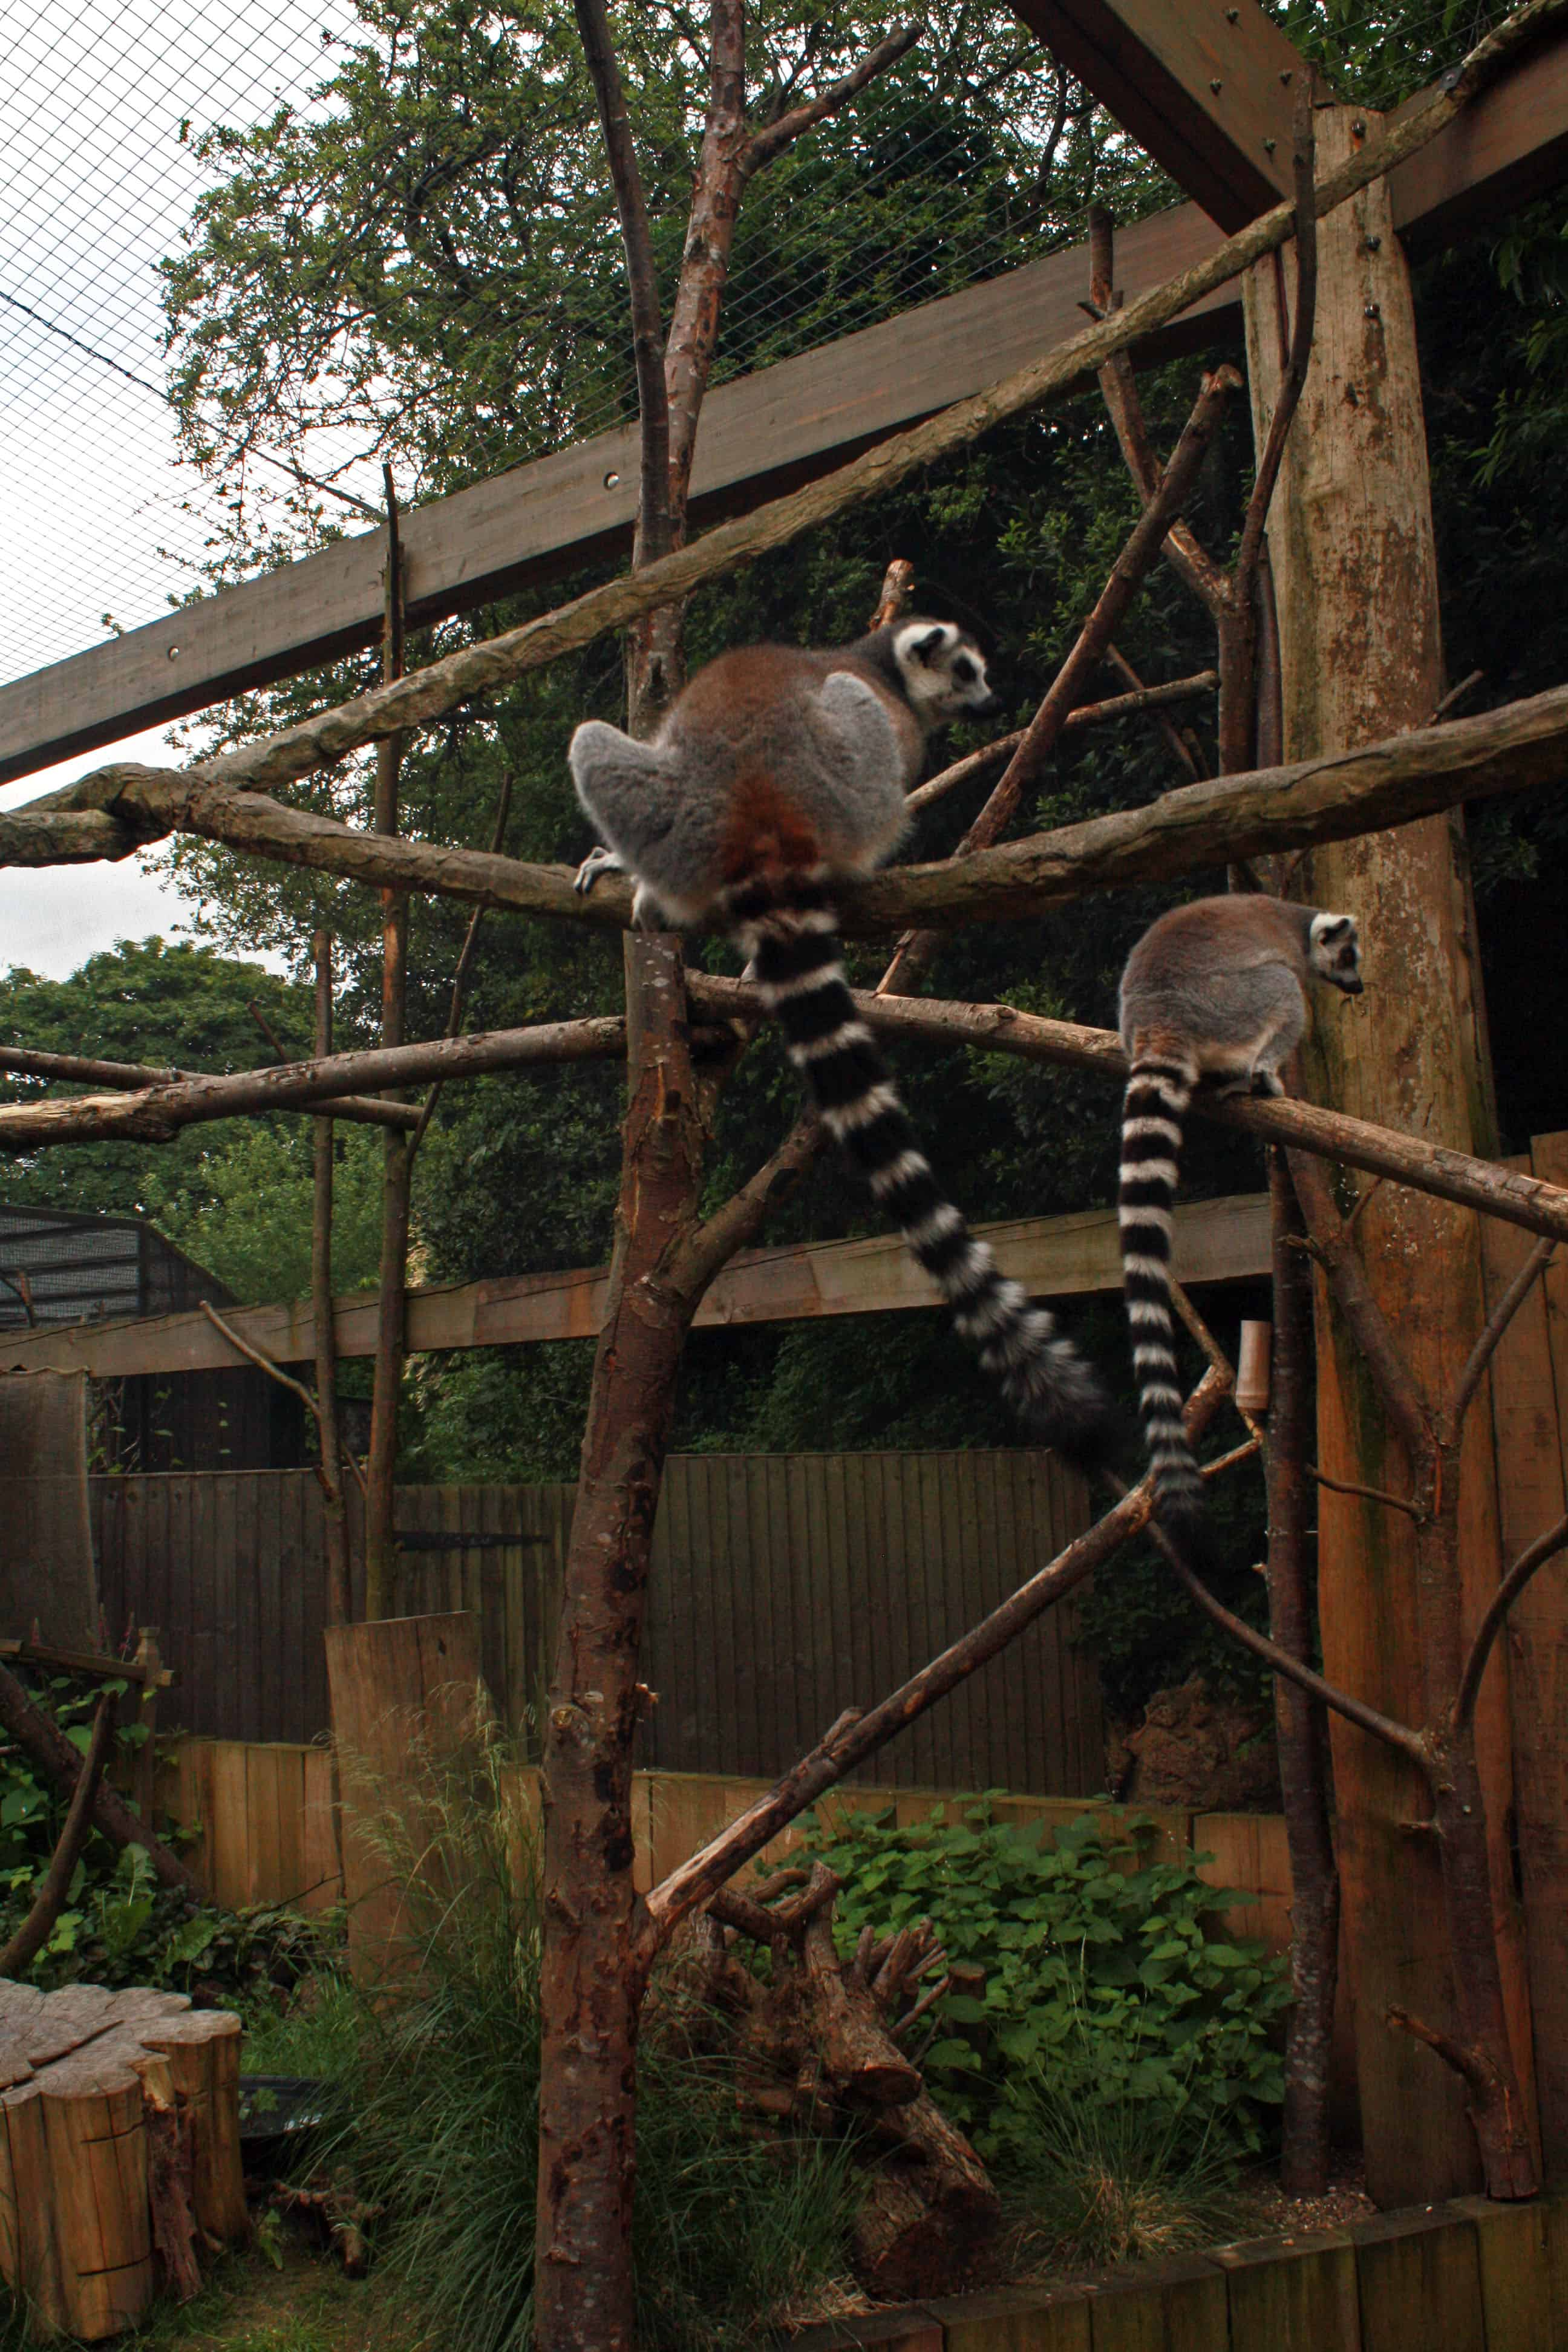 Lemurs at London Zoo